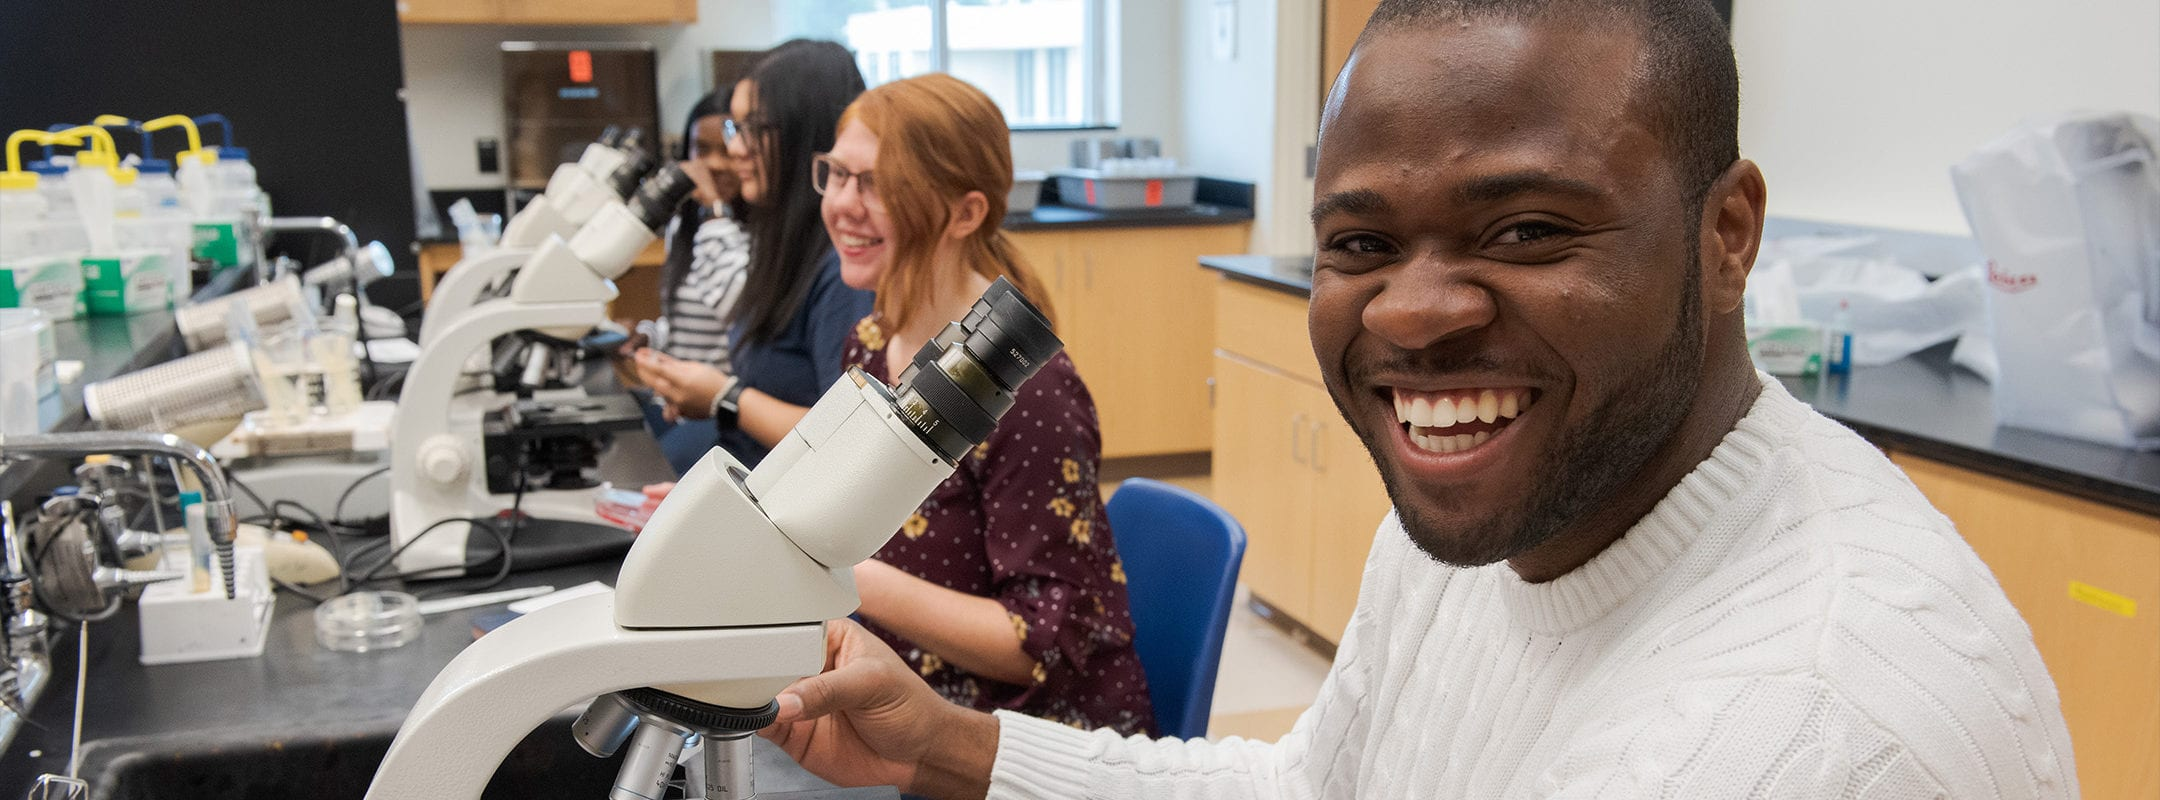 A happy smiling student looking at the camera with a microscope in front of him. Other students are in the class in the background.